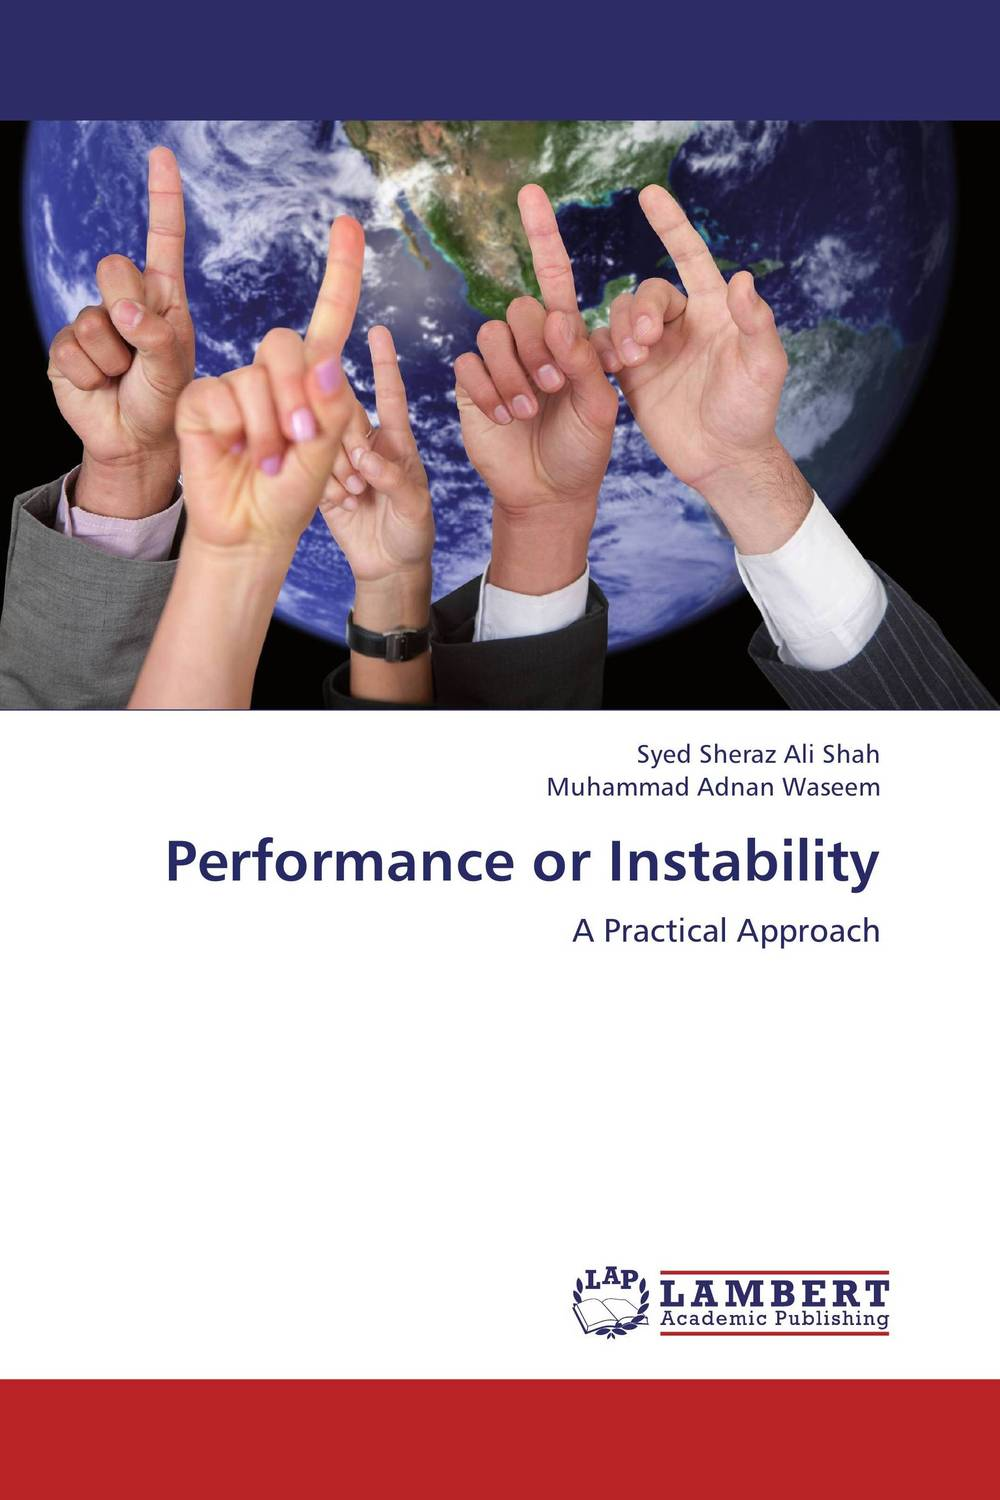 Performance or Instability performance or instability